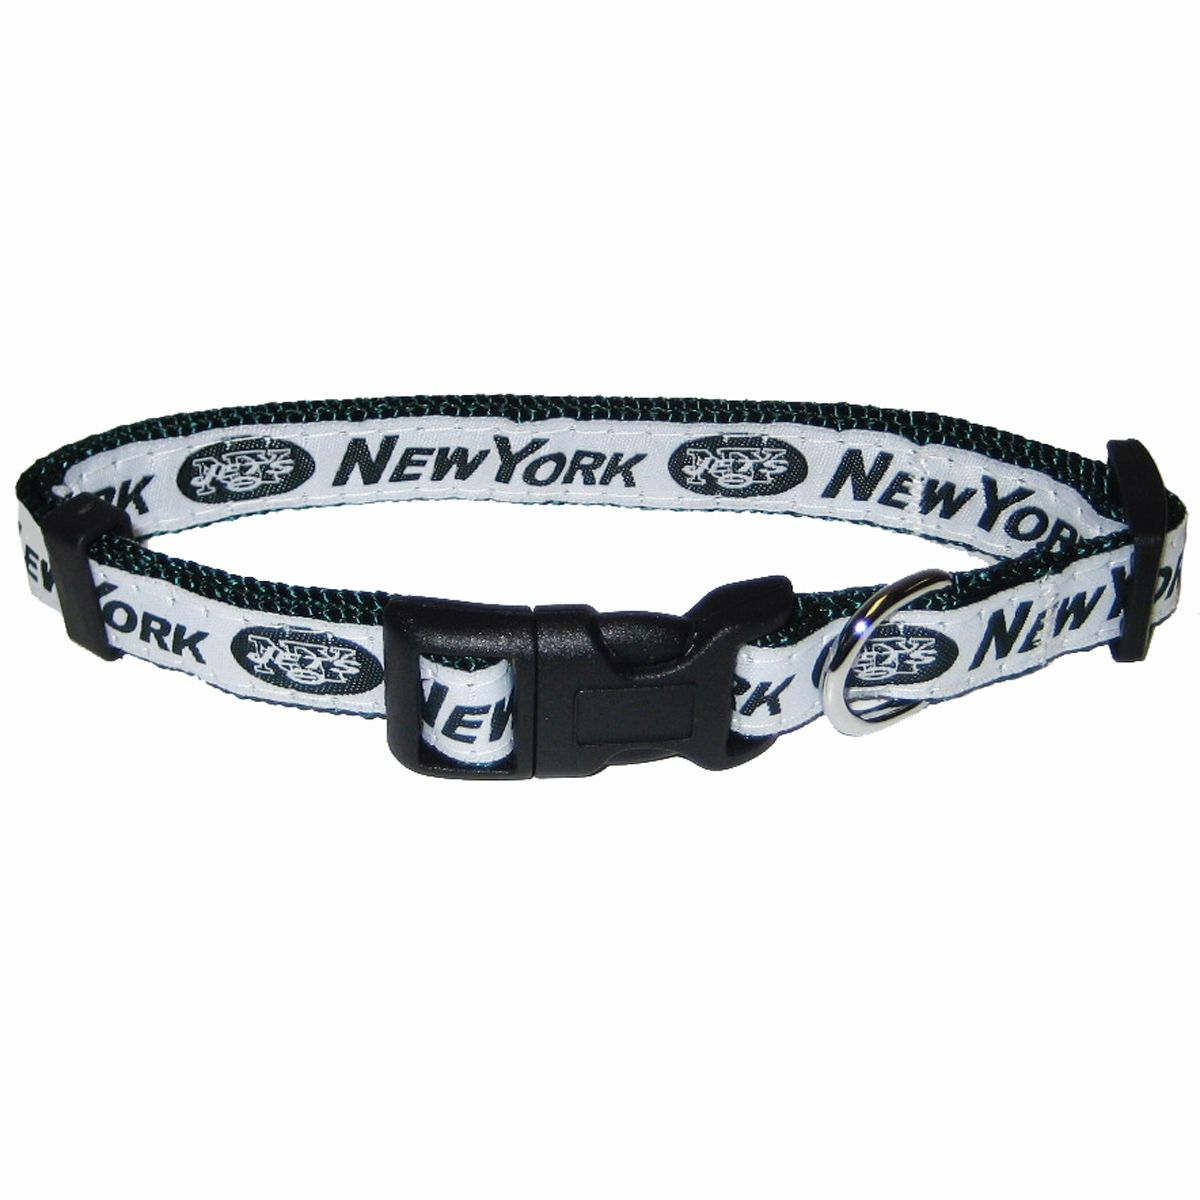 New York Jets NFL Dog Collars from RadioFence.com $16.99 (http://www.radiofence.com/new-york-jets-nfl-dog-collars/)